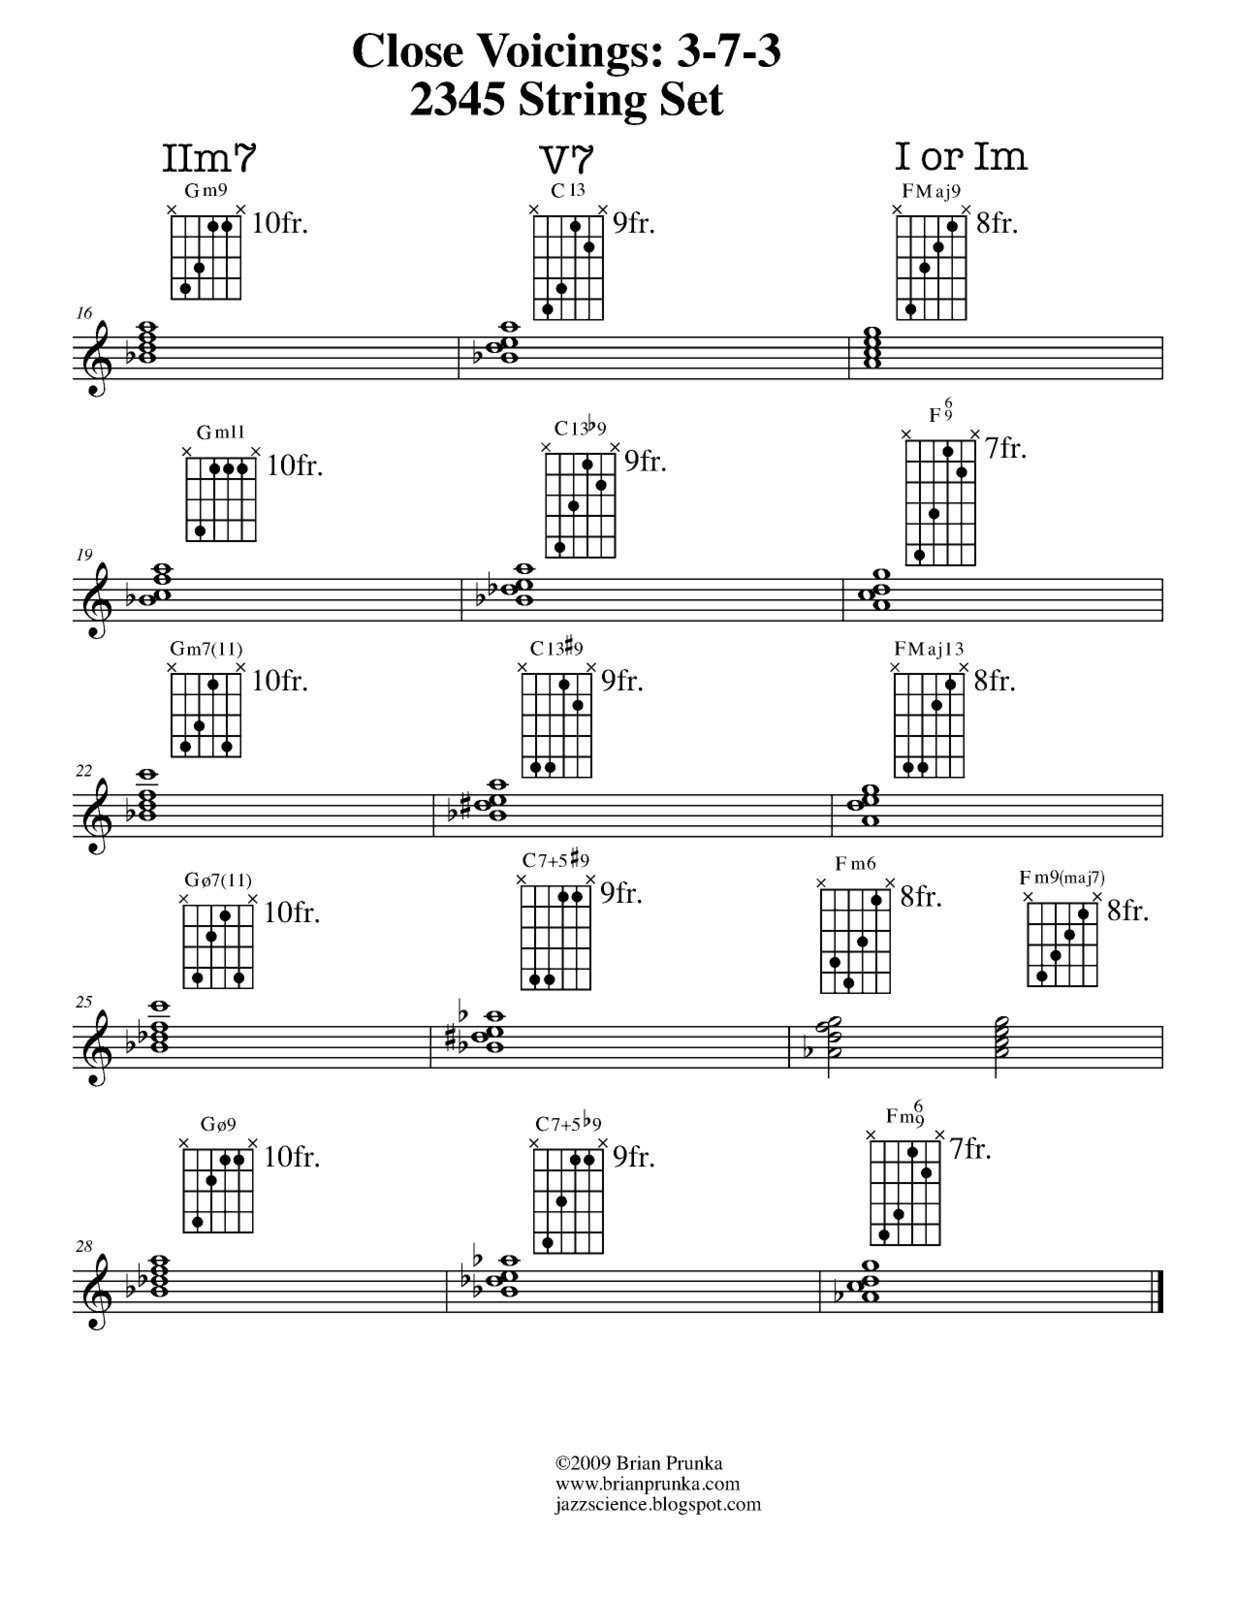 Jazz science practice ideas from the woodshed bill evans style rootless close voicings for guitar ii v i hexwebz Images